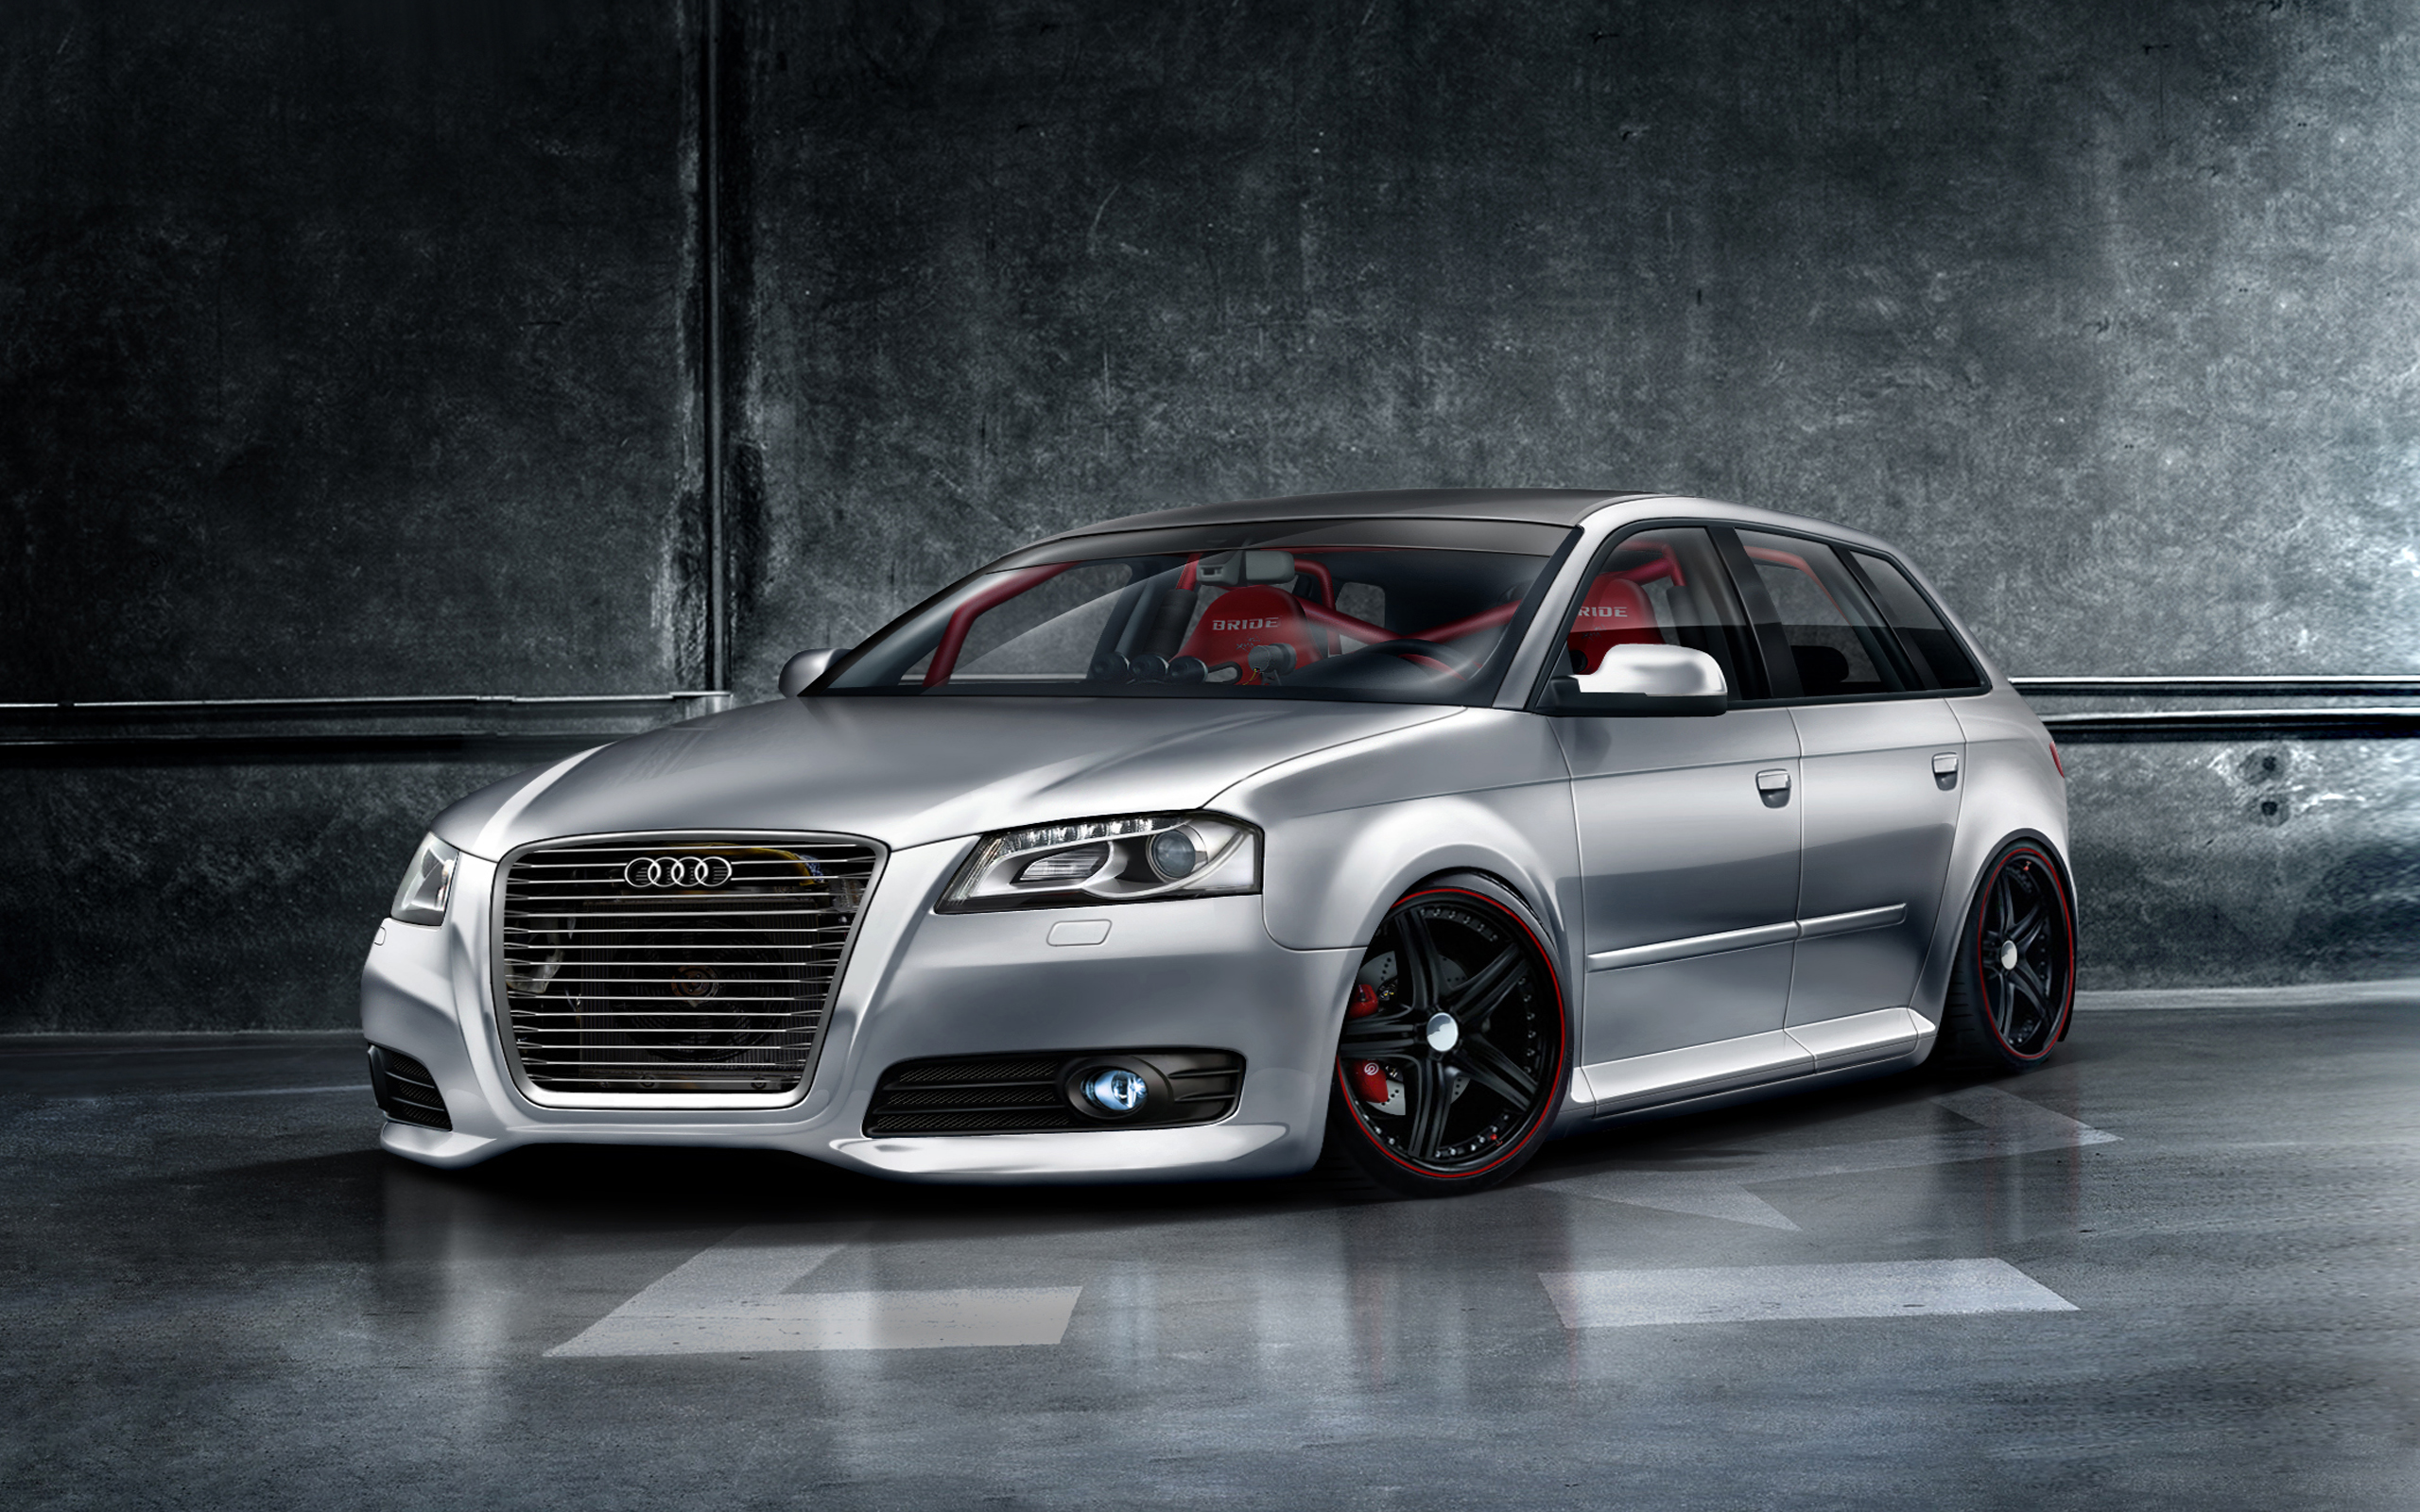 Audi A3 Wallpaper Full Hd Pictures